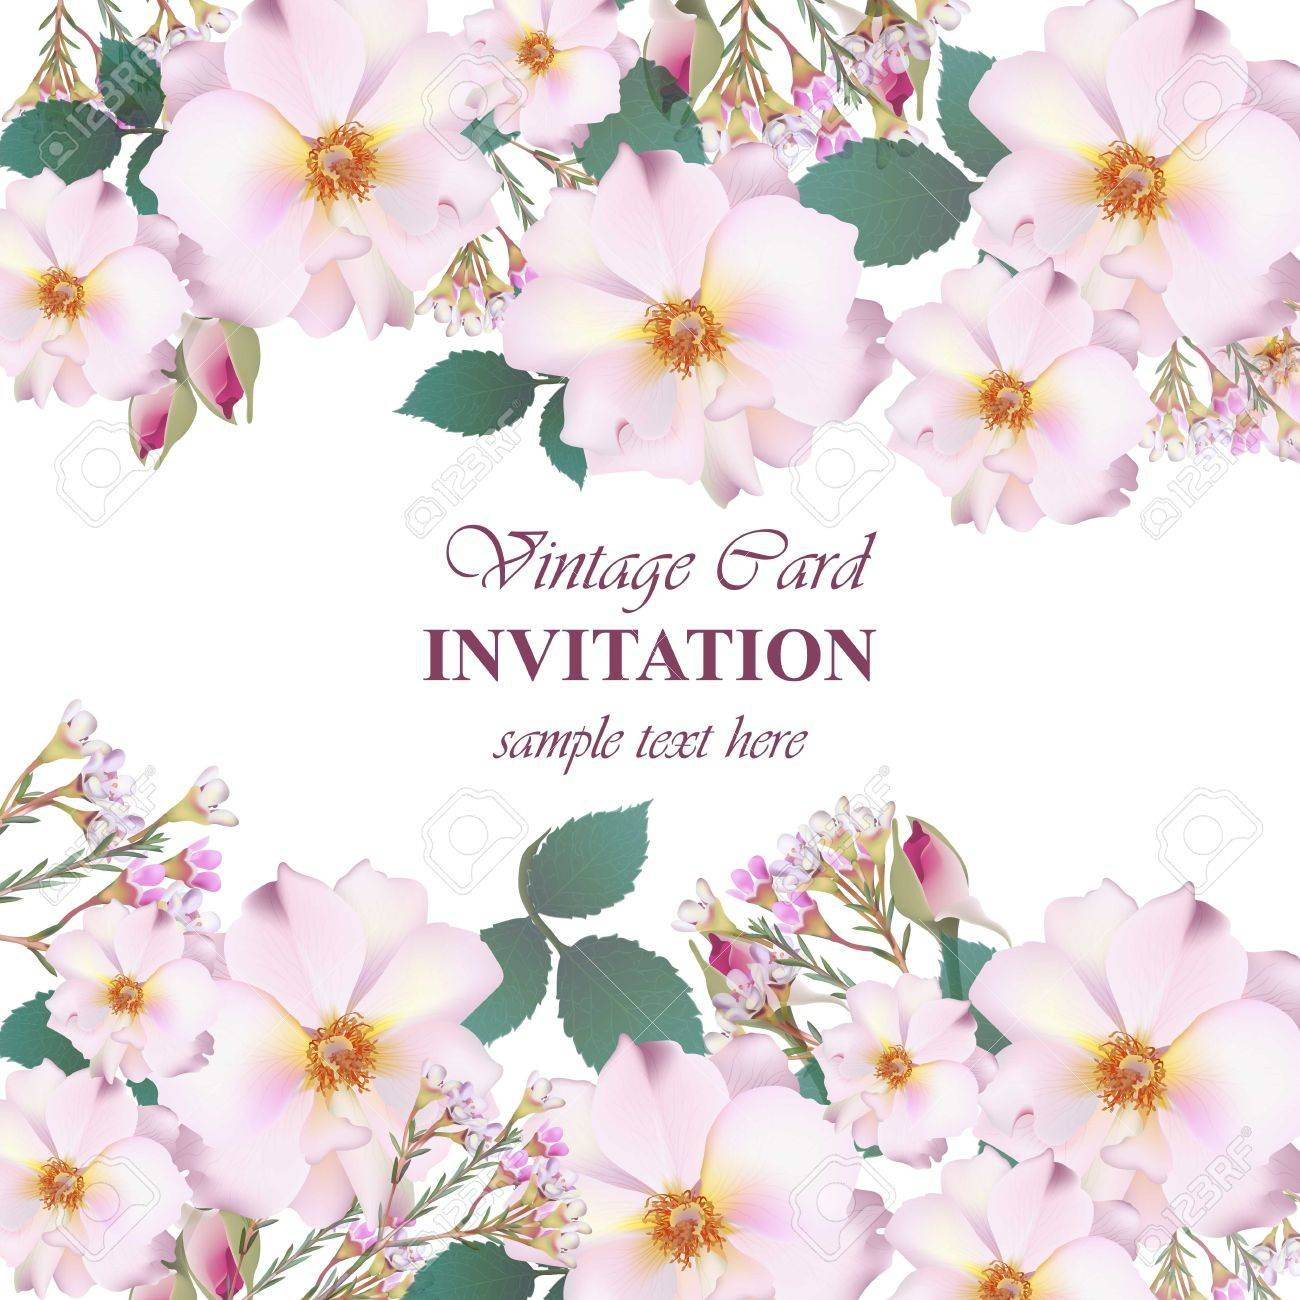 Wedding invitation card vector delicate rose and lavender flowers vector wedding invitation card vector delicate rose and lavender flowers primrose pink colors stopboris Choice Image